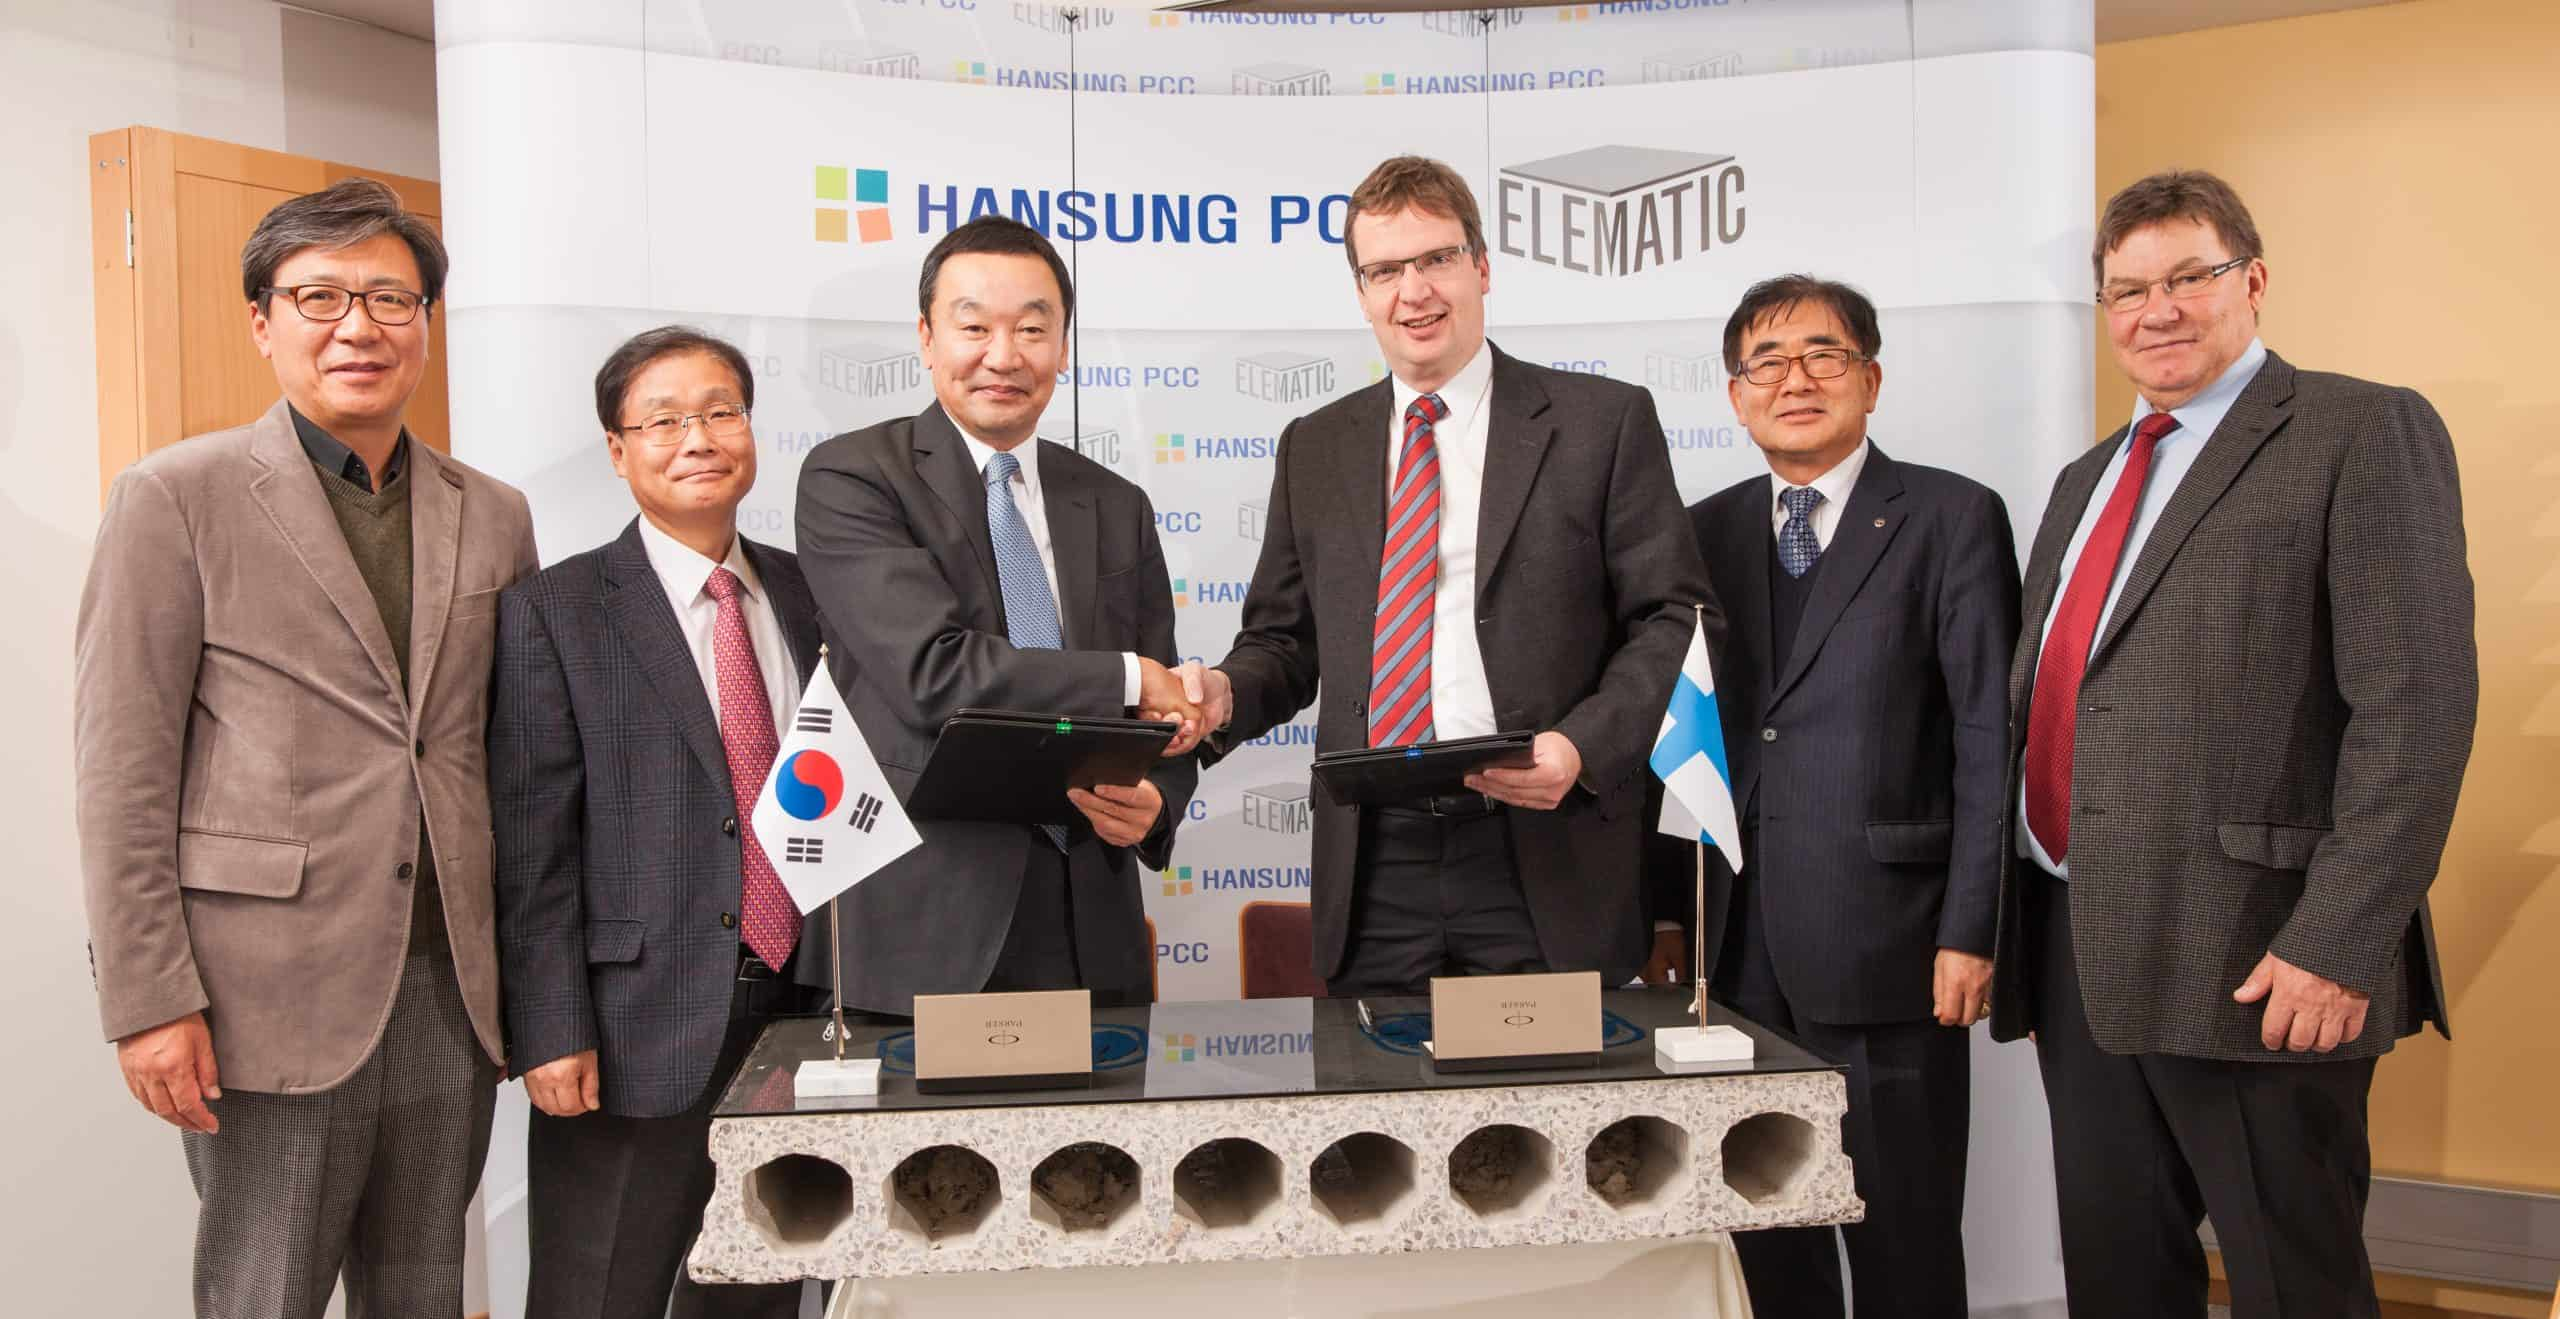 Mr. Koo, Cha-Chul, Chairman of Hansung and YESCO shaking hands with Mr. Mats Jungar, CEO of Elematic Oy AB.